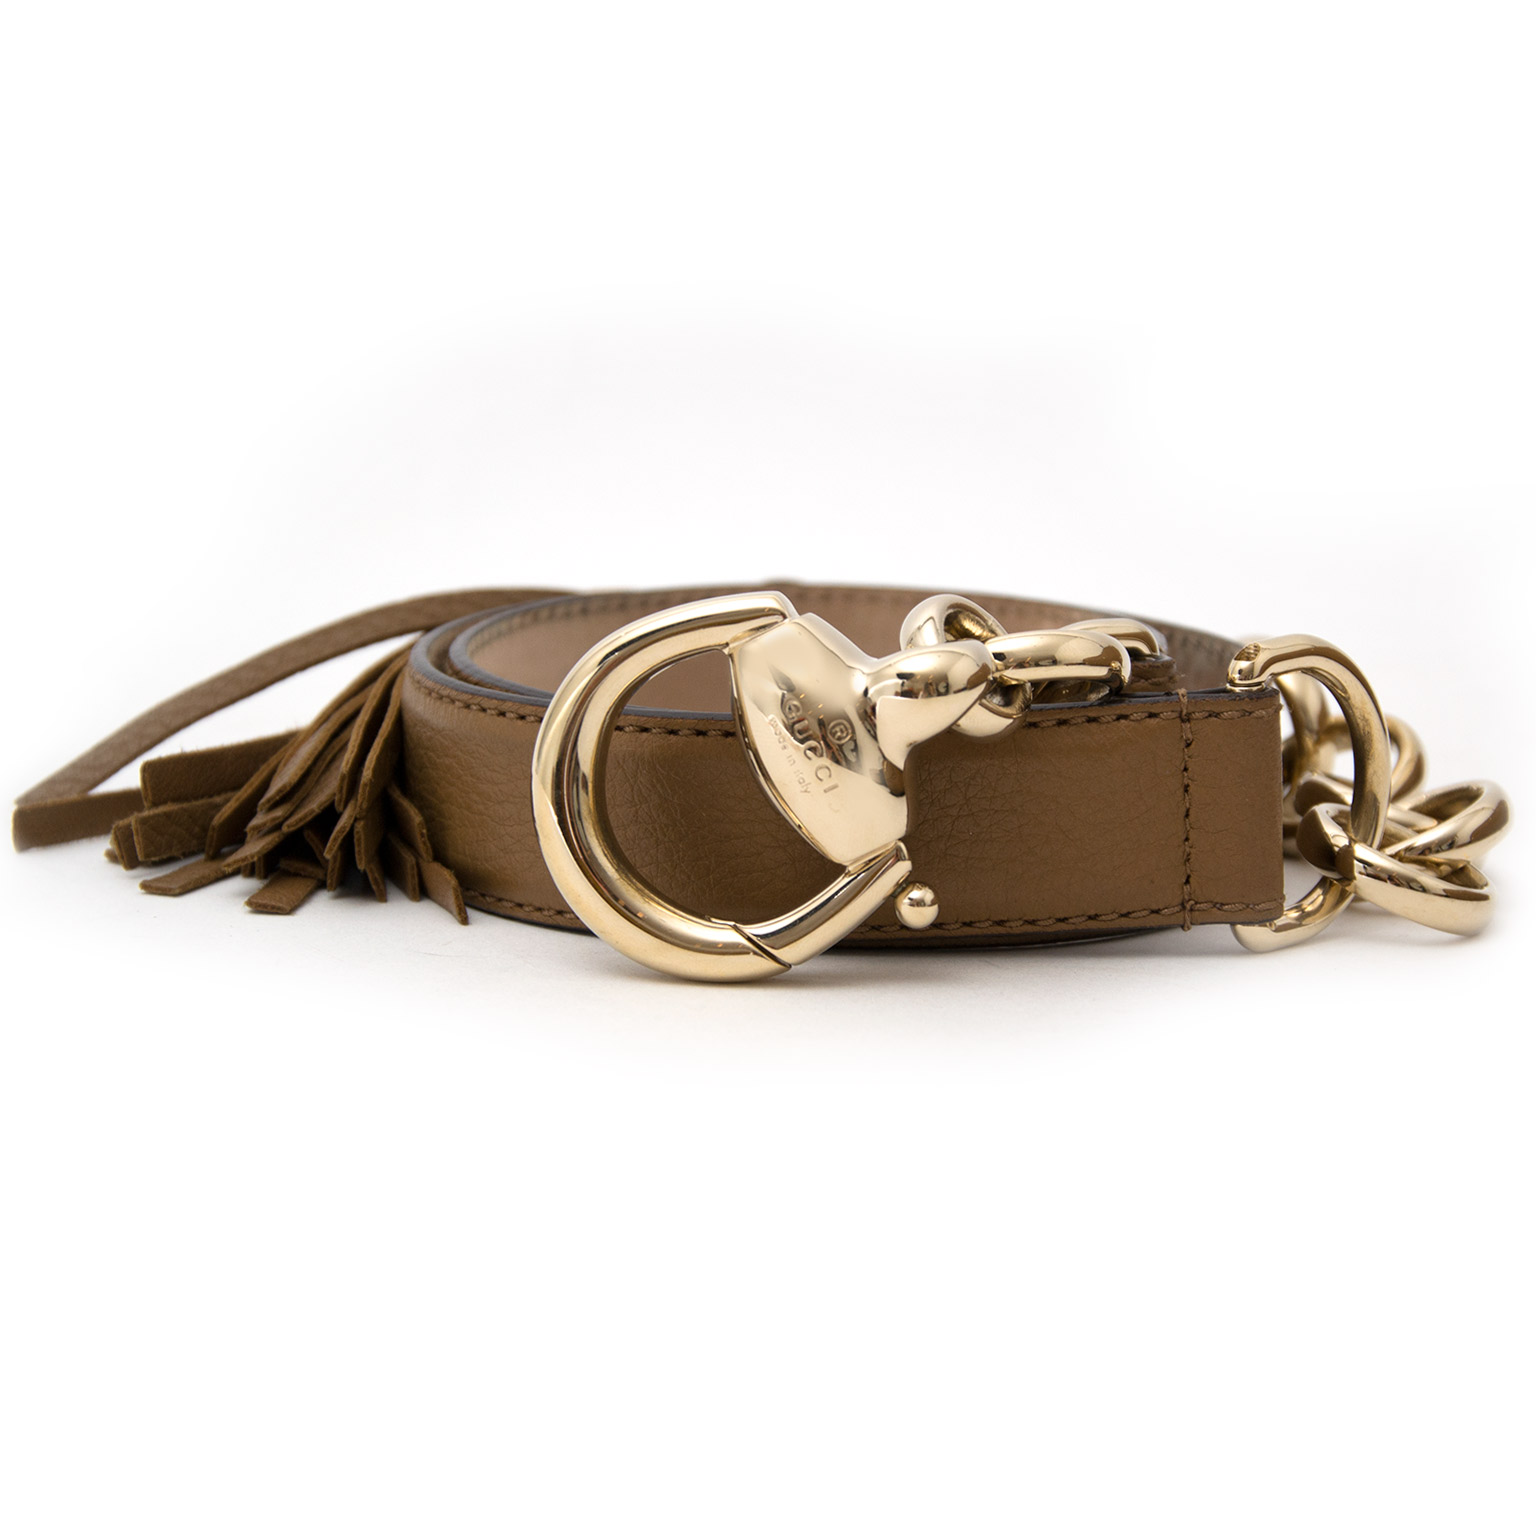 Gucci Brown Leather Bamboo Tassel Belt now online at labellov.com